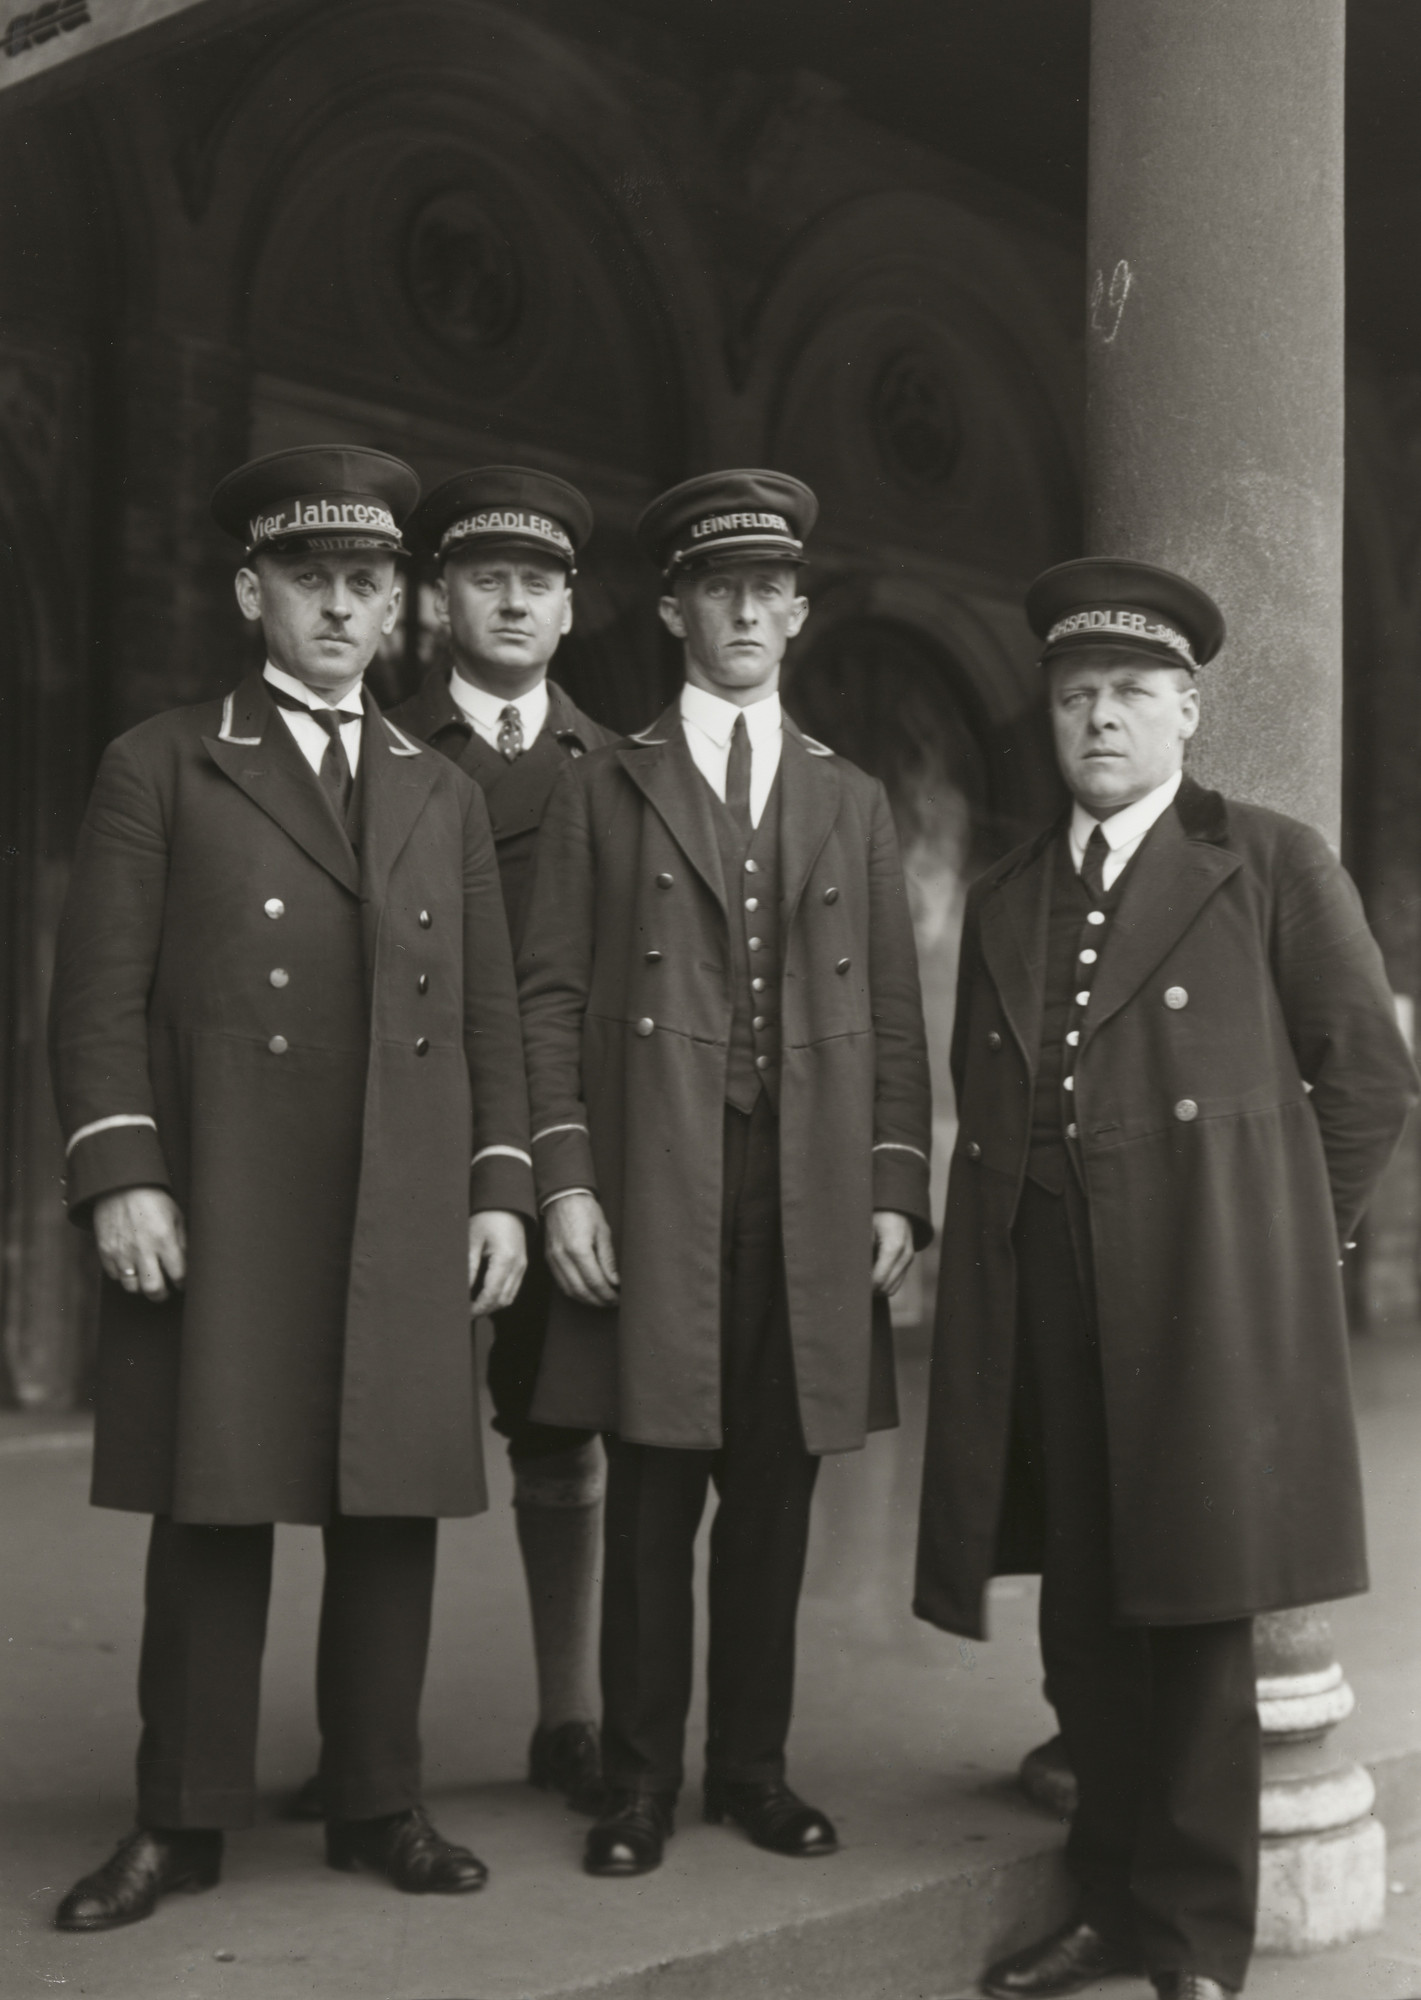 August Sander. Hotel Staff in Hamburg. c. 1929